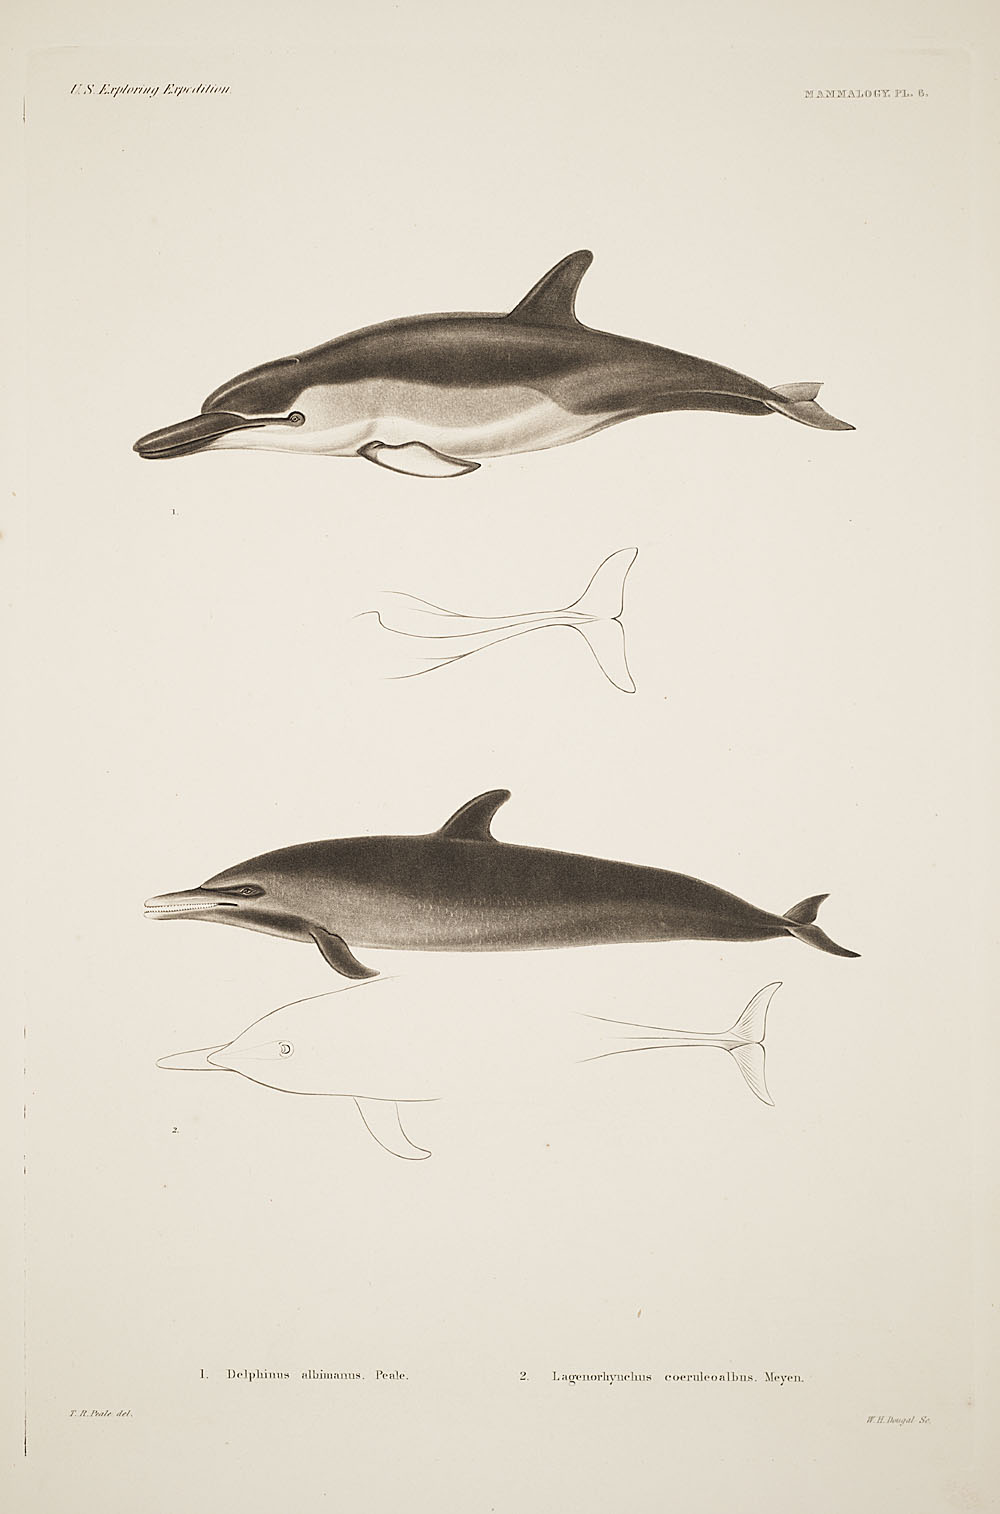 Dolphins,  Image number:sil19-12-021b